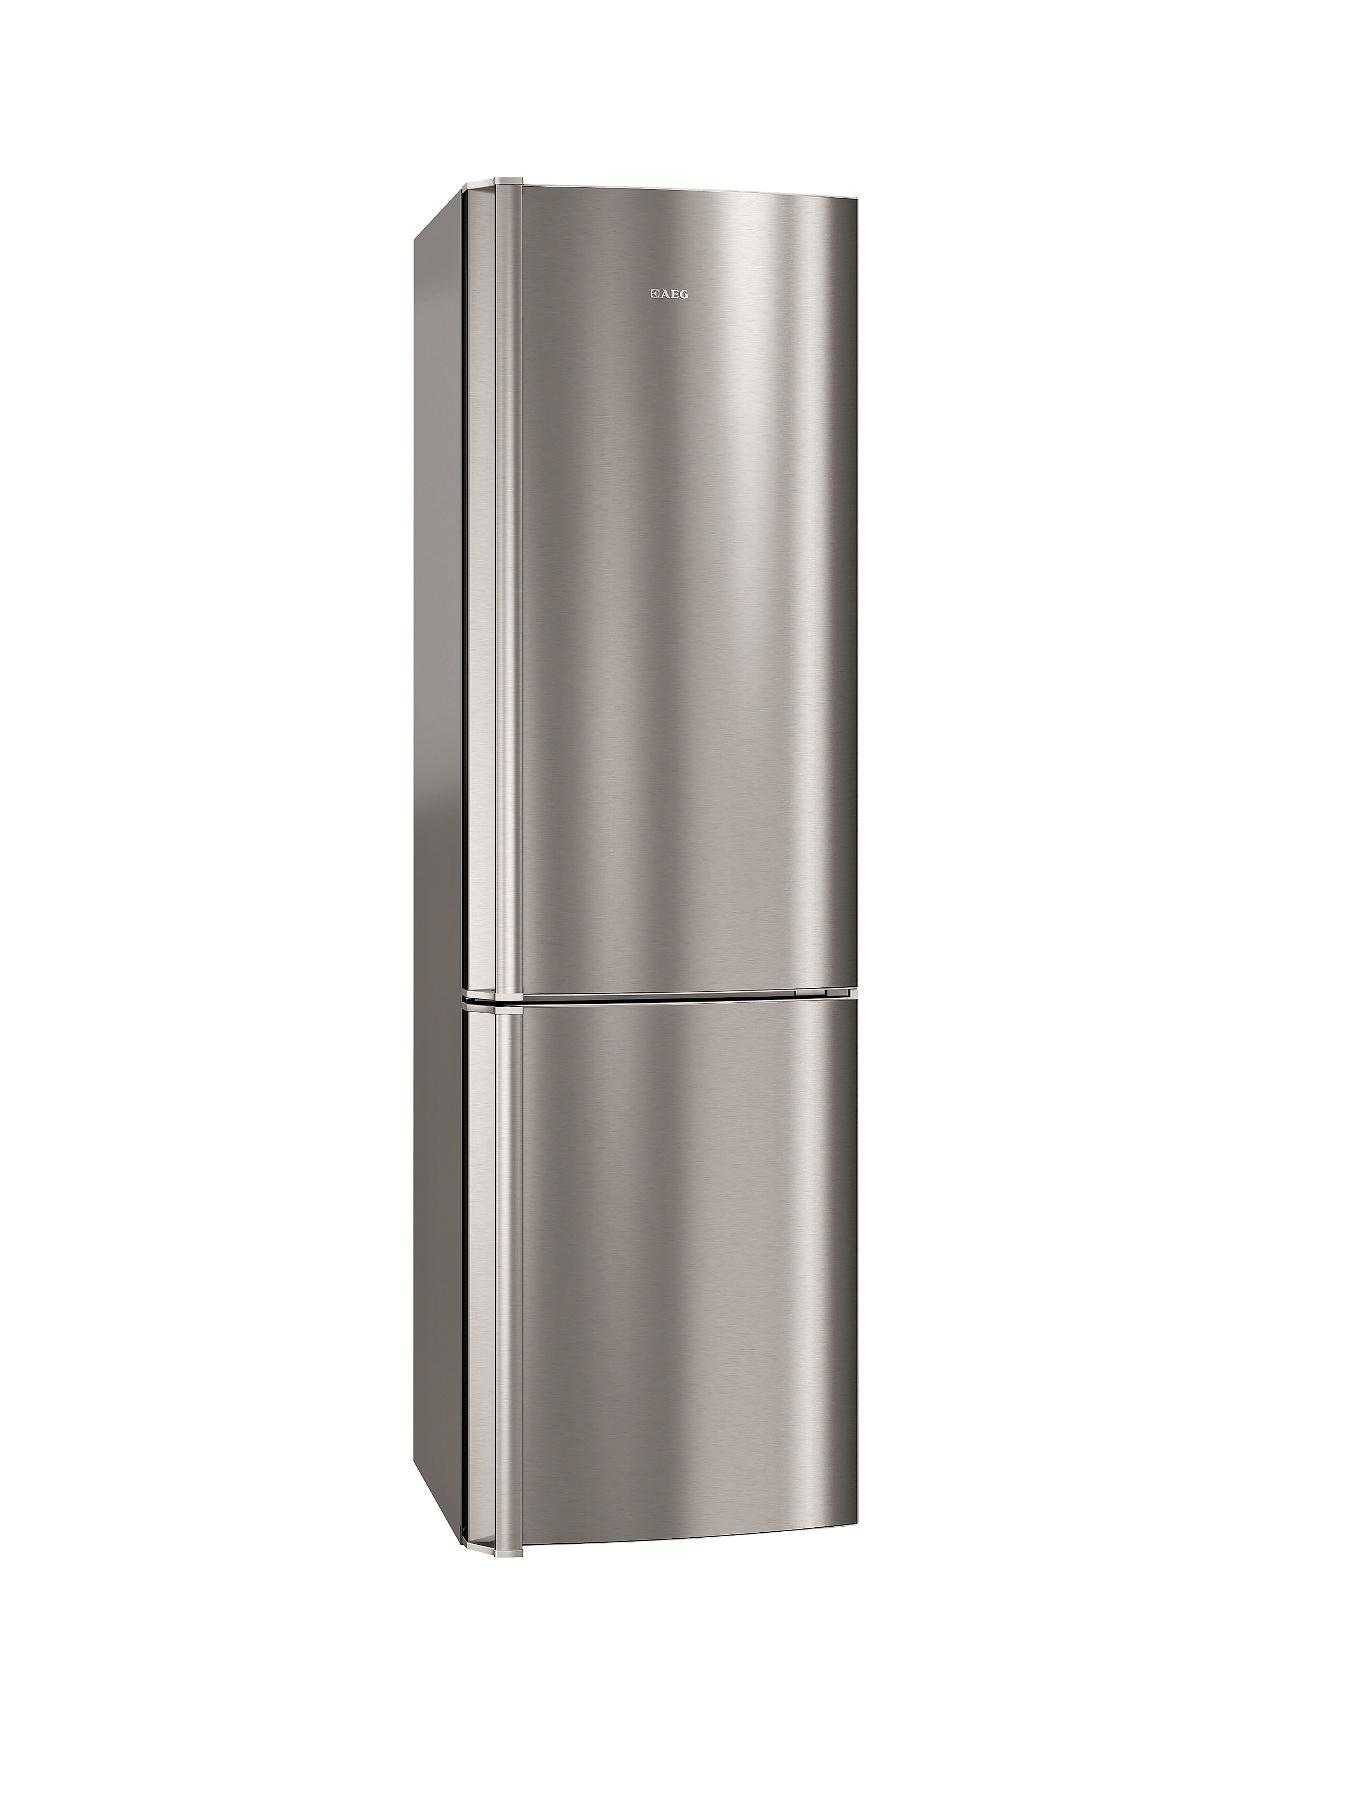 AEG S83820CTX2 Frost Free Fridge Freezer - Stainless Steel